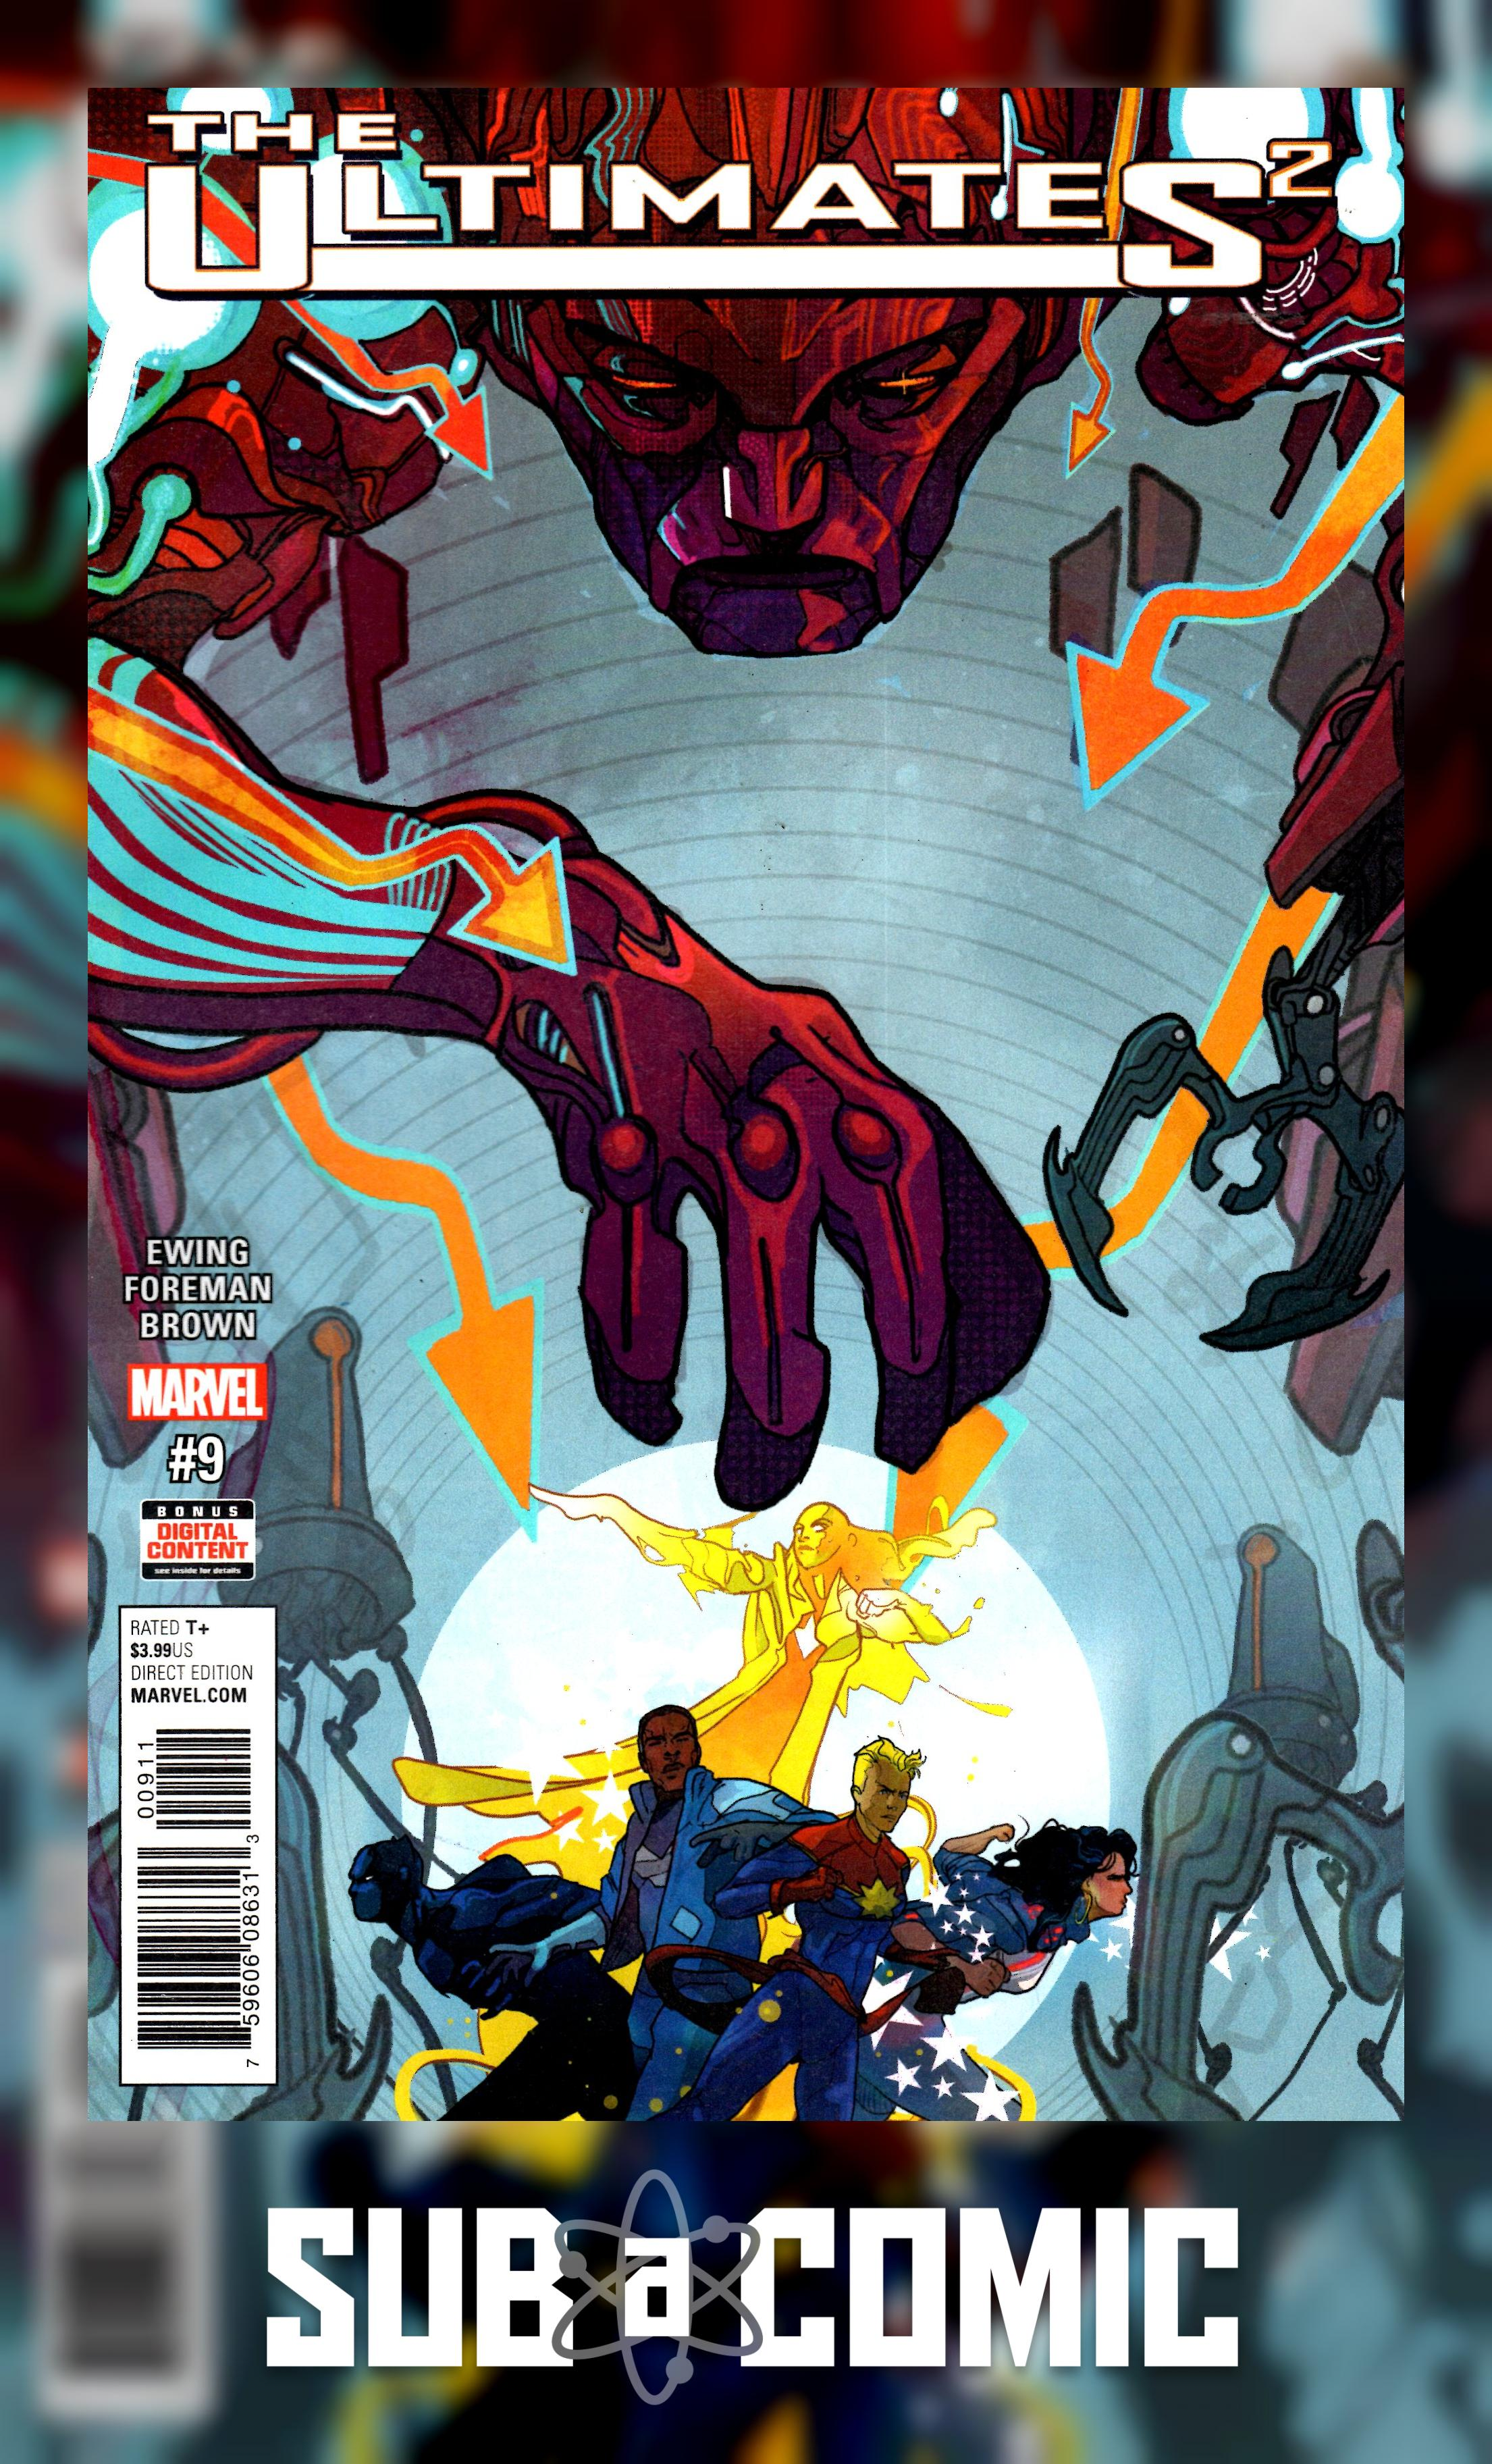 ULTIMATES 2 #9 (MARVEL 2017 1st Print) COMIC